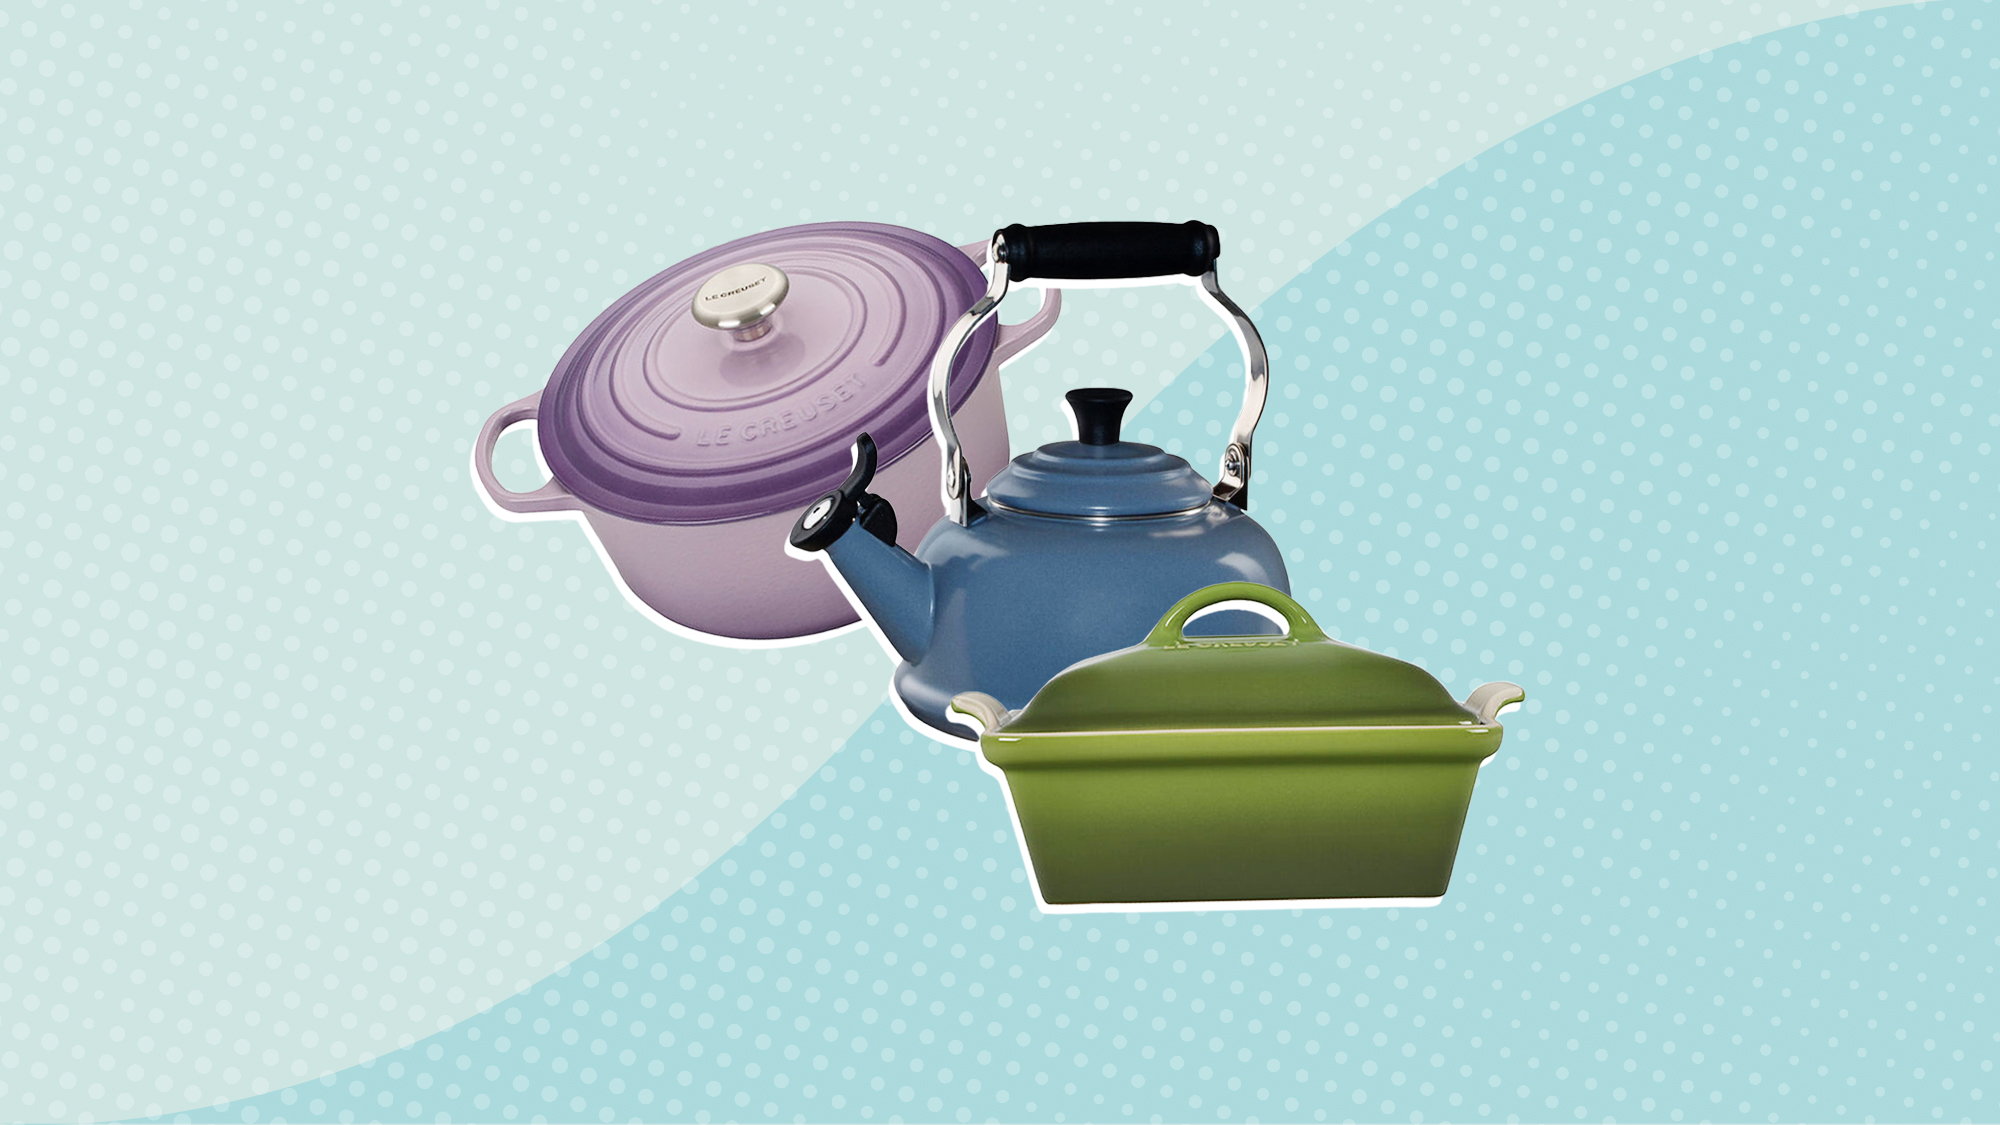 3 kitchen items from Le Creuset